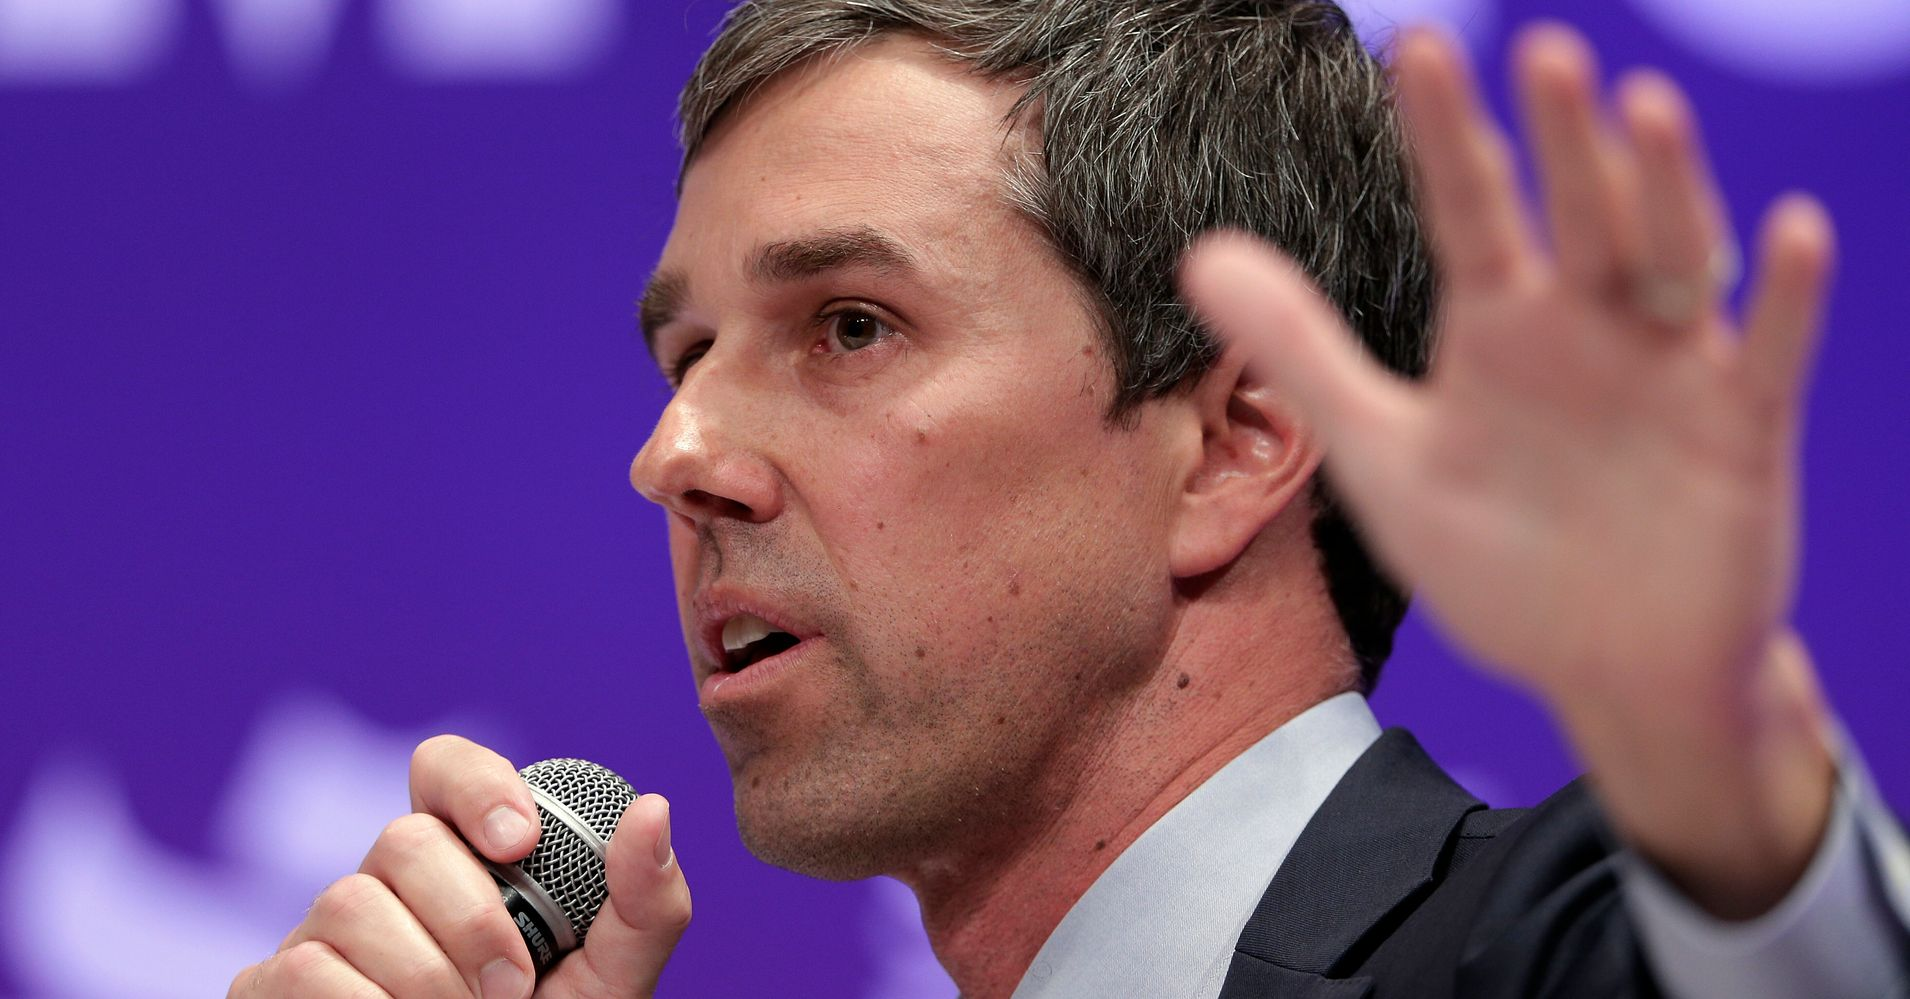 Beto O'Rourke: Big Pharma Should Face Consequences, Even Jail Time, For Opioid Crisis thumbnail